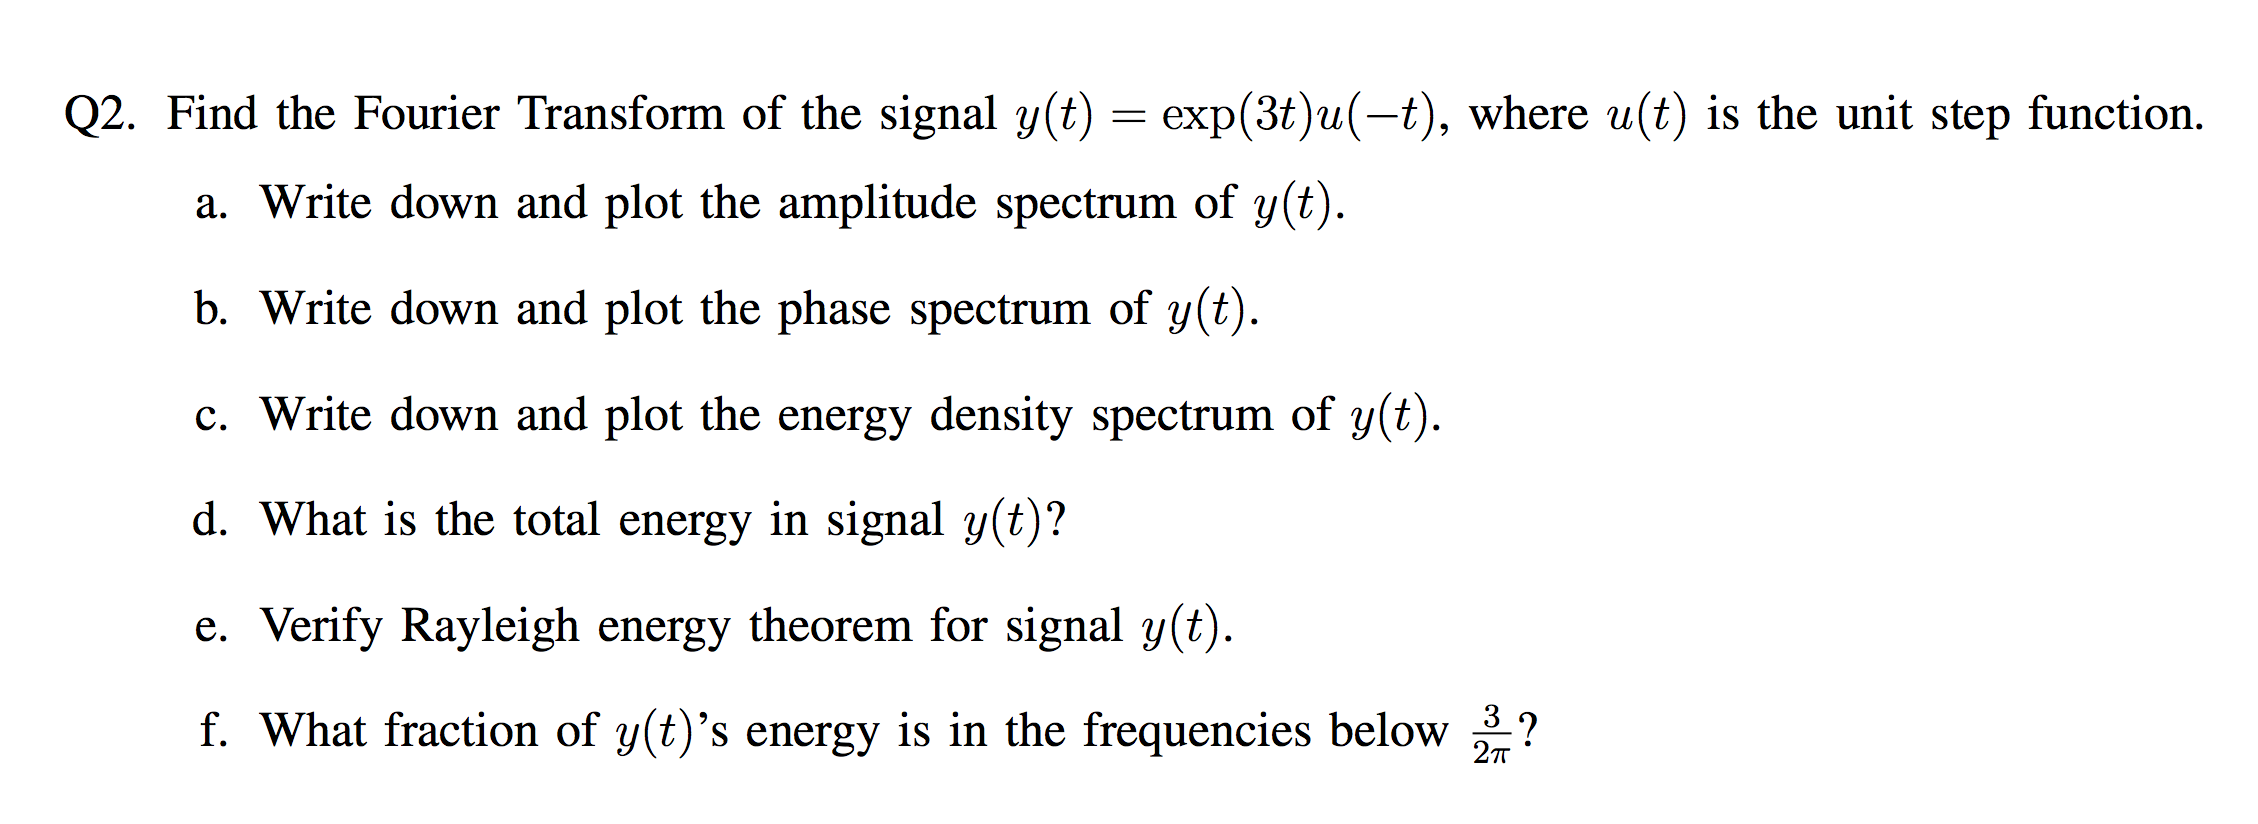 Find the Fourier Transform of the signal y(t) = ex